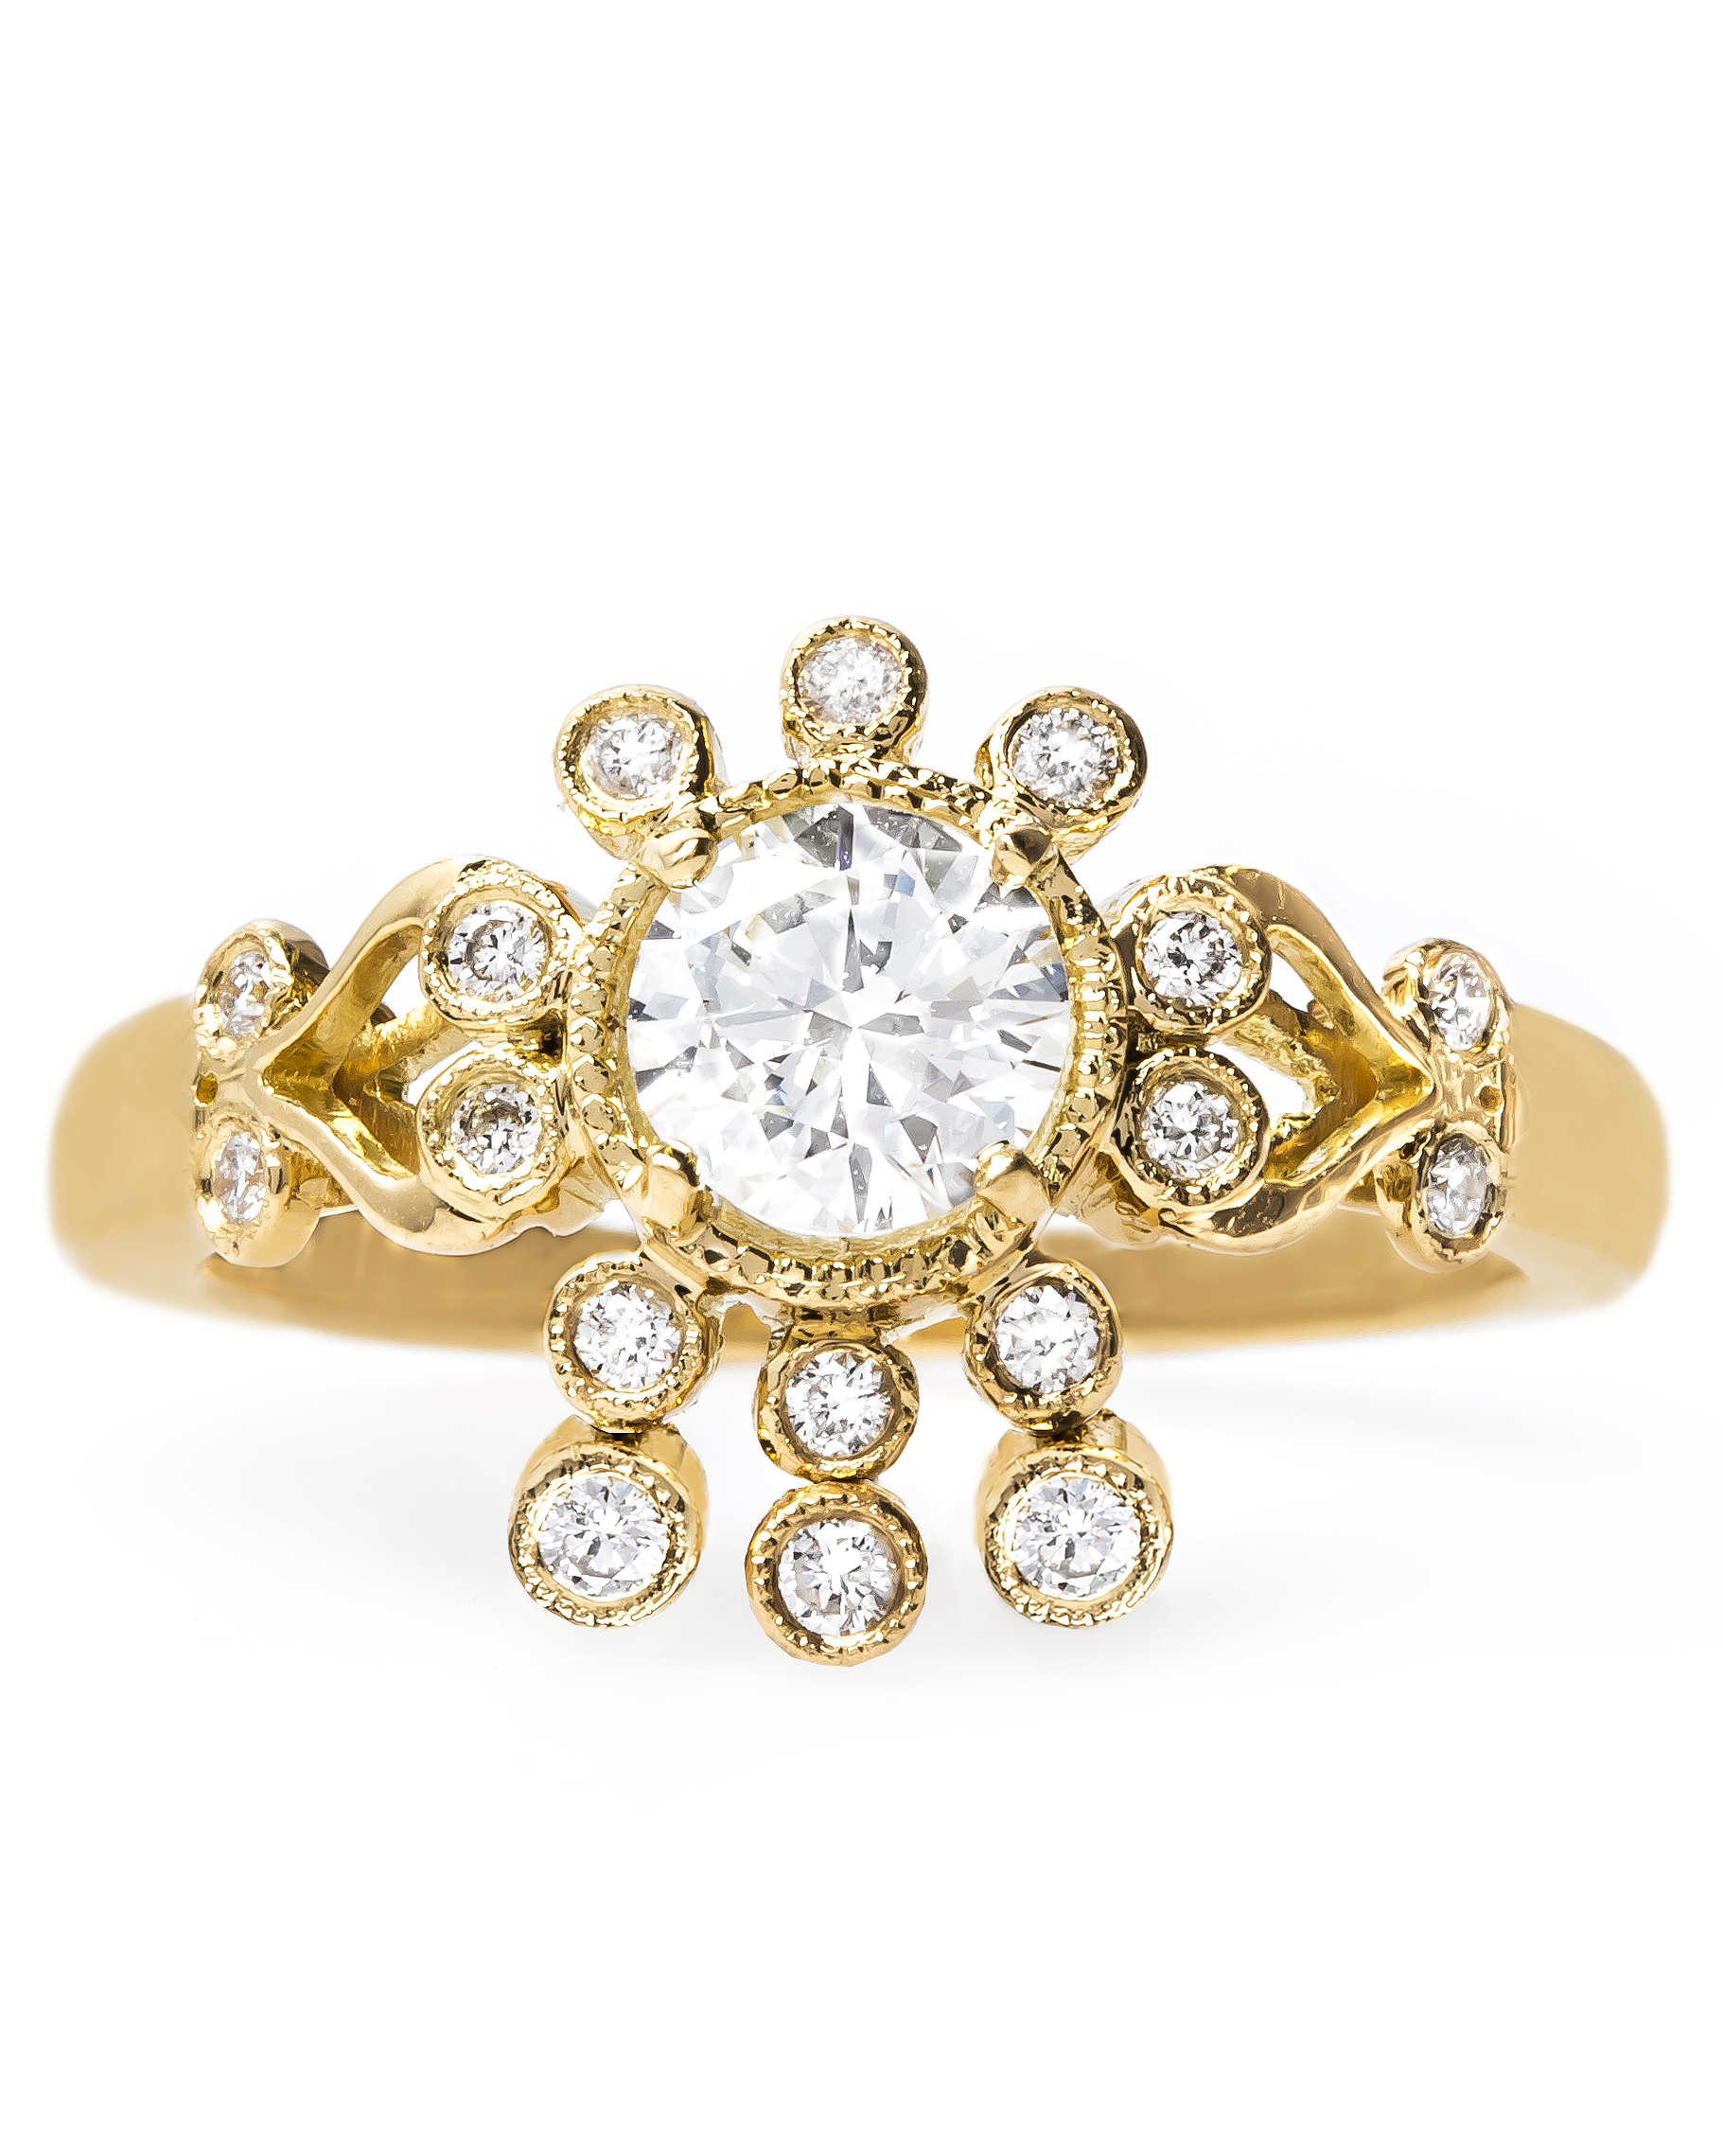 claire-pettibone-ring-collection-chantilly-yellow-0915.jpg